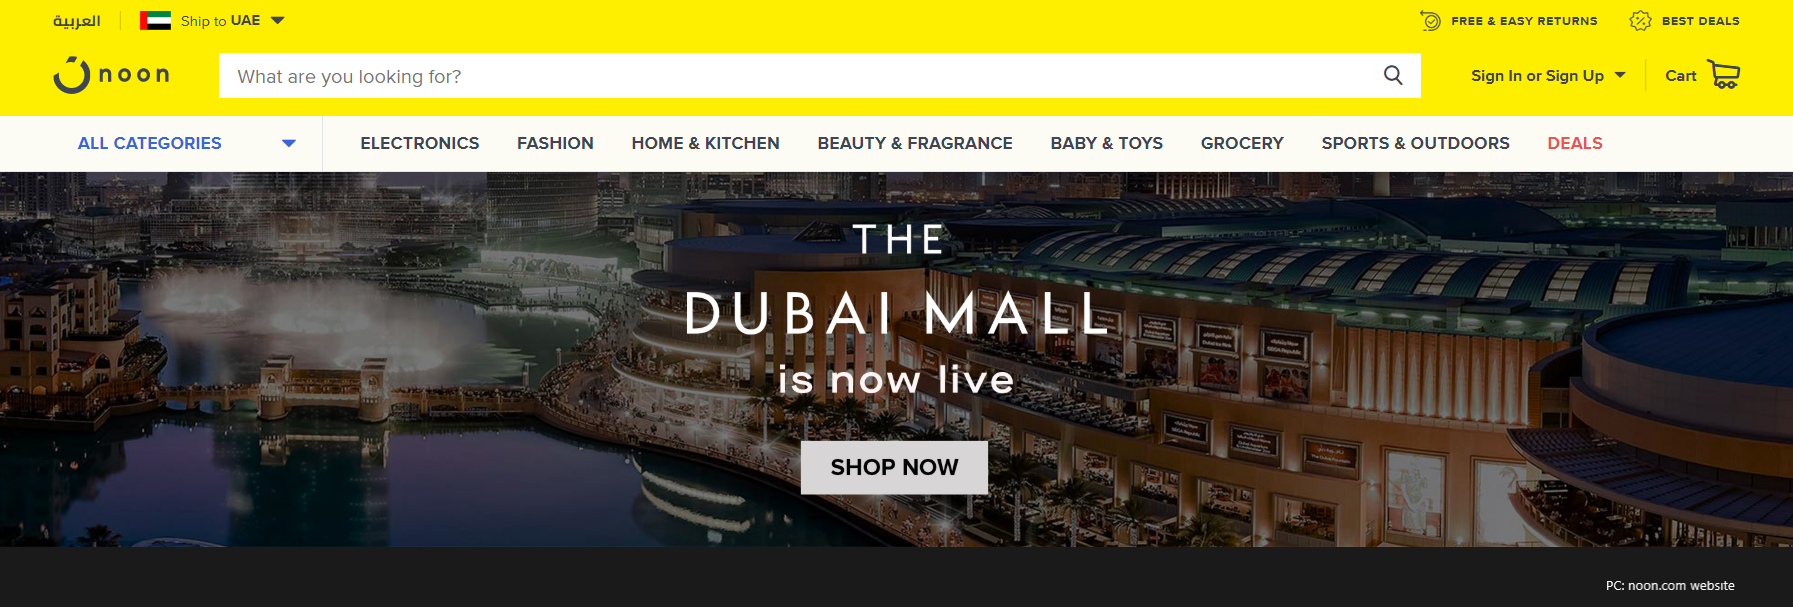 The Dubai Mall a click away on noon.com